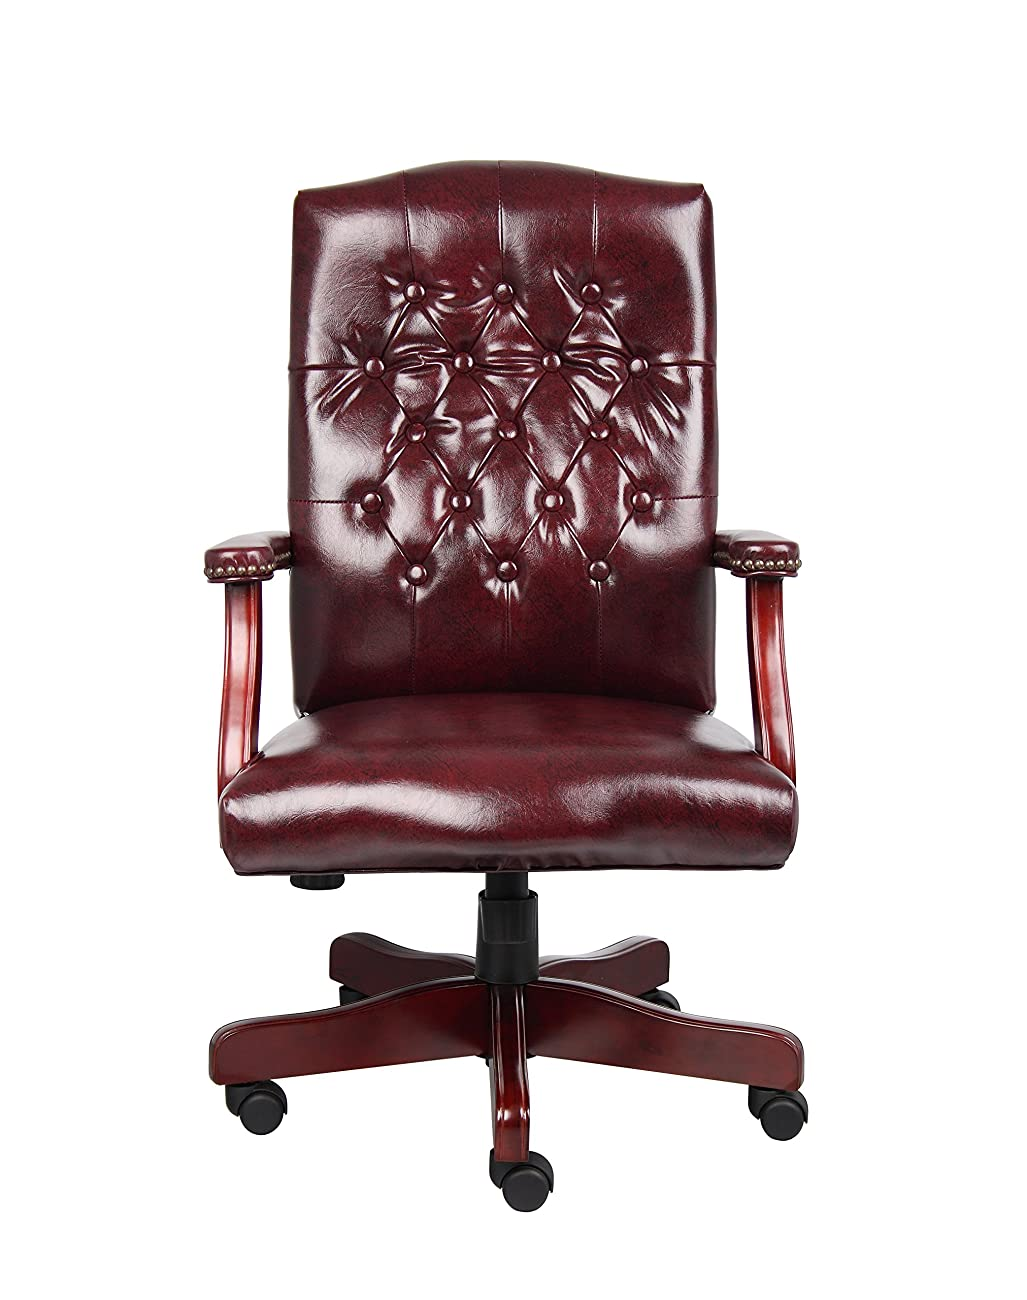 Boss Office Products B905-BY Classic Executive Caressoft Chair with Mahogany Finish in Burgundy 2